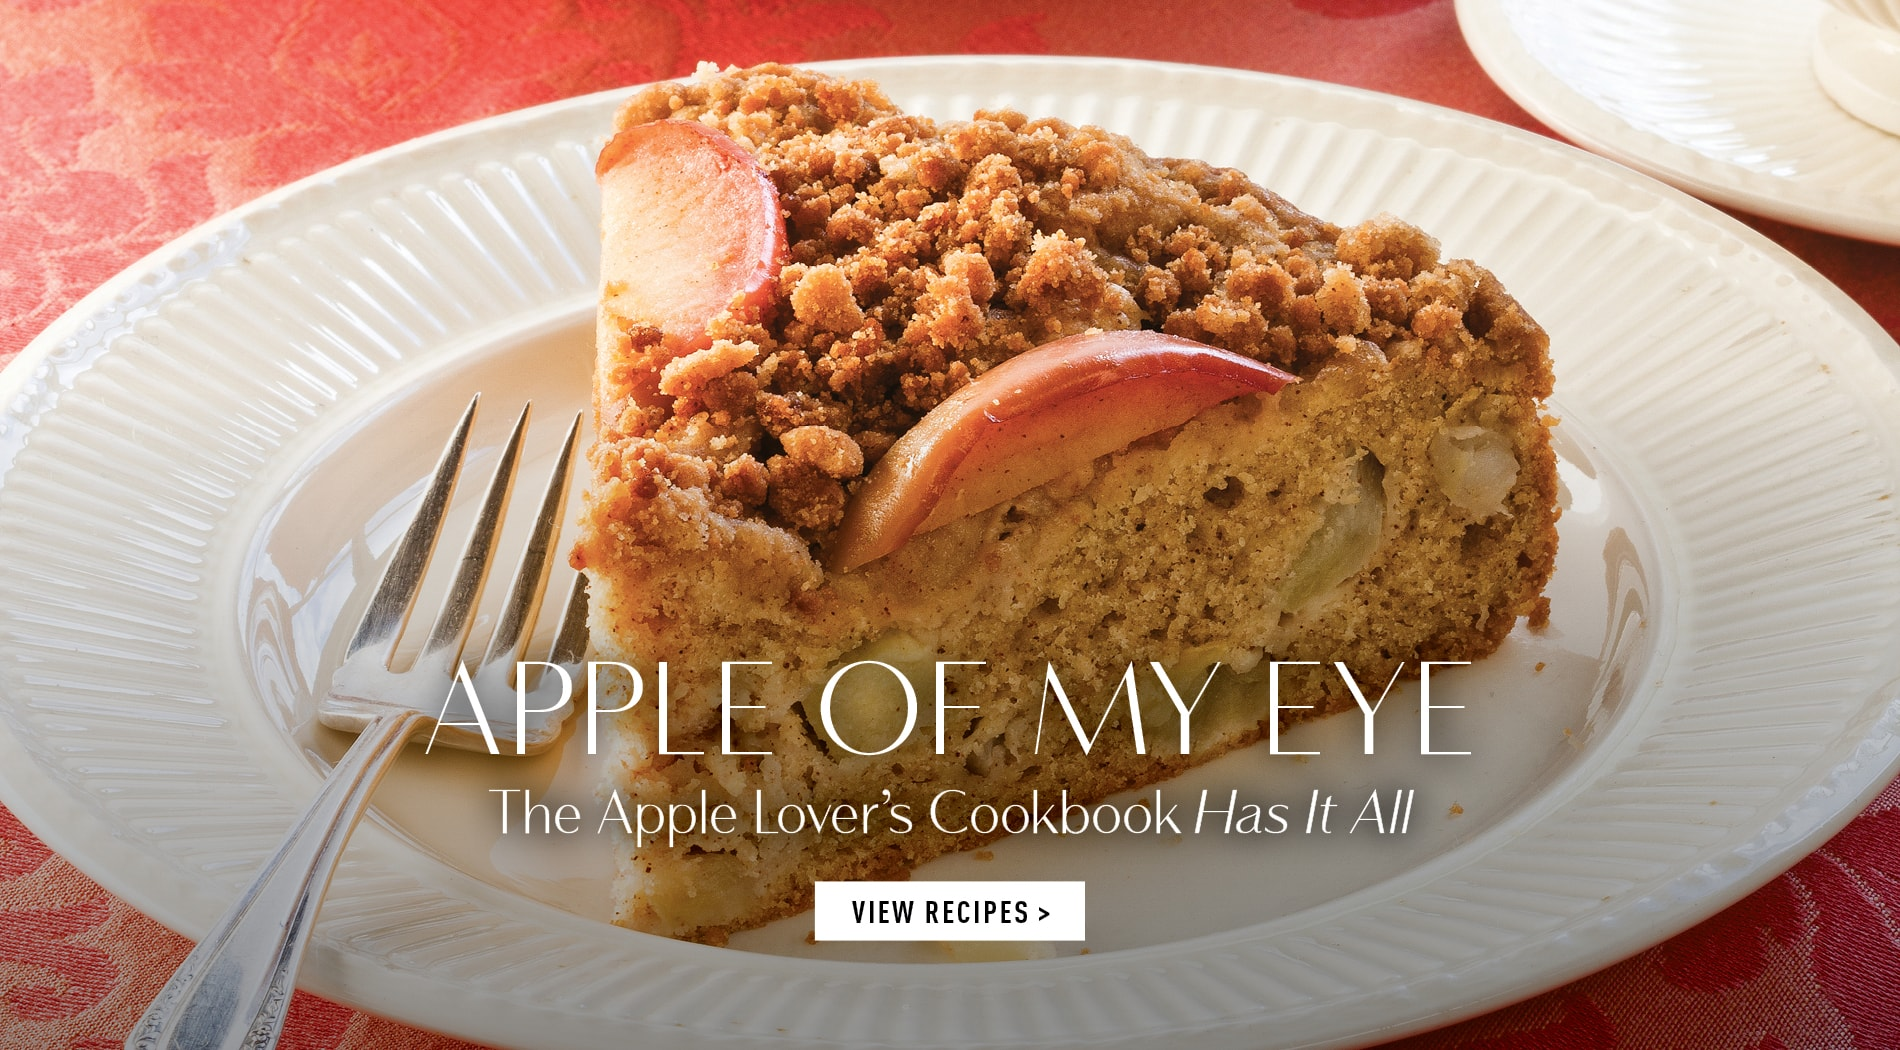 Apple Lovers Cookbook by Amy Traverso